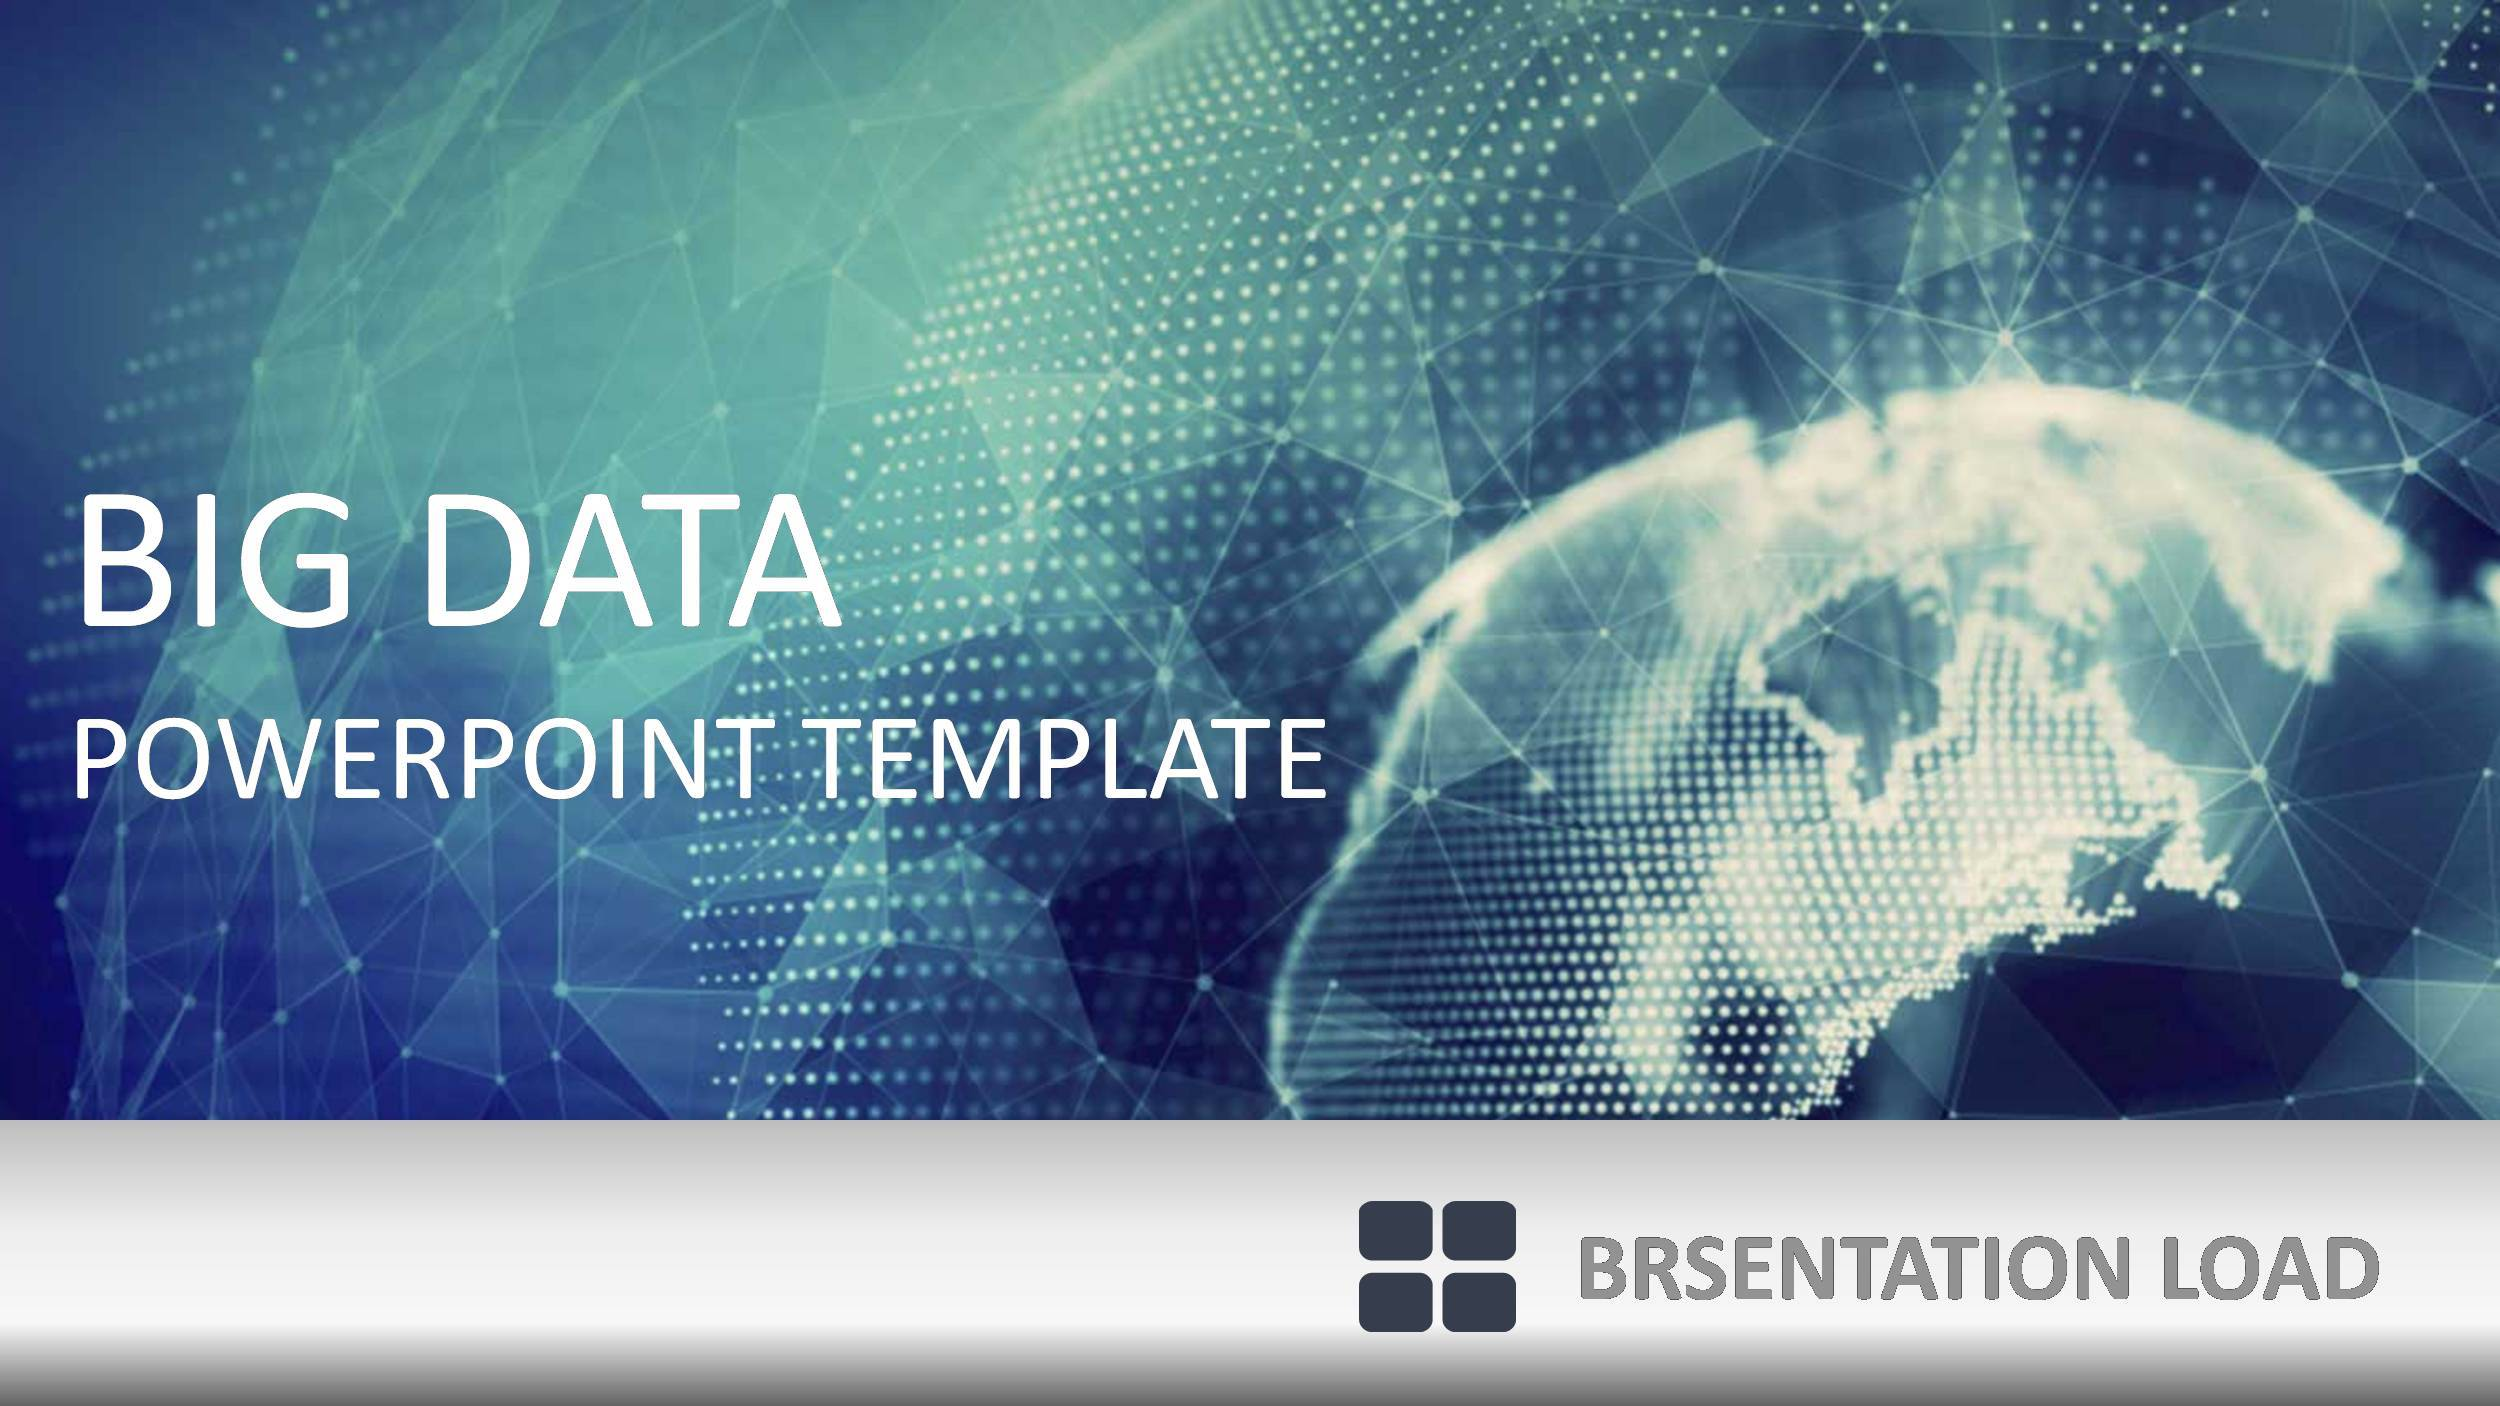 Big data powerpoint presentation template by rainstudio graphicriver big data powerpoint presentation template powerpoint templates presentation templates previewslide1 toneelgroepblik Choice Image